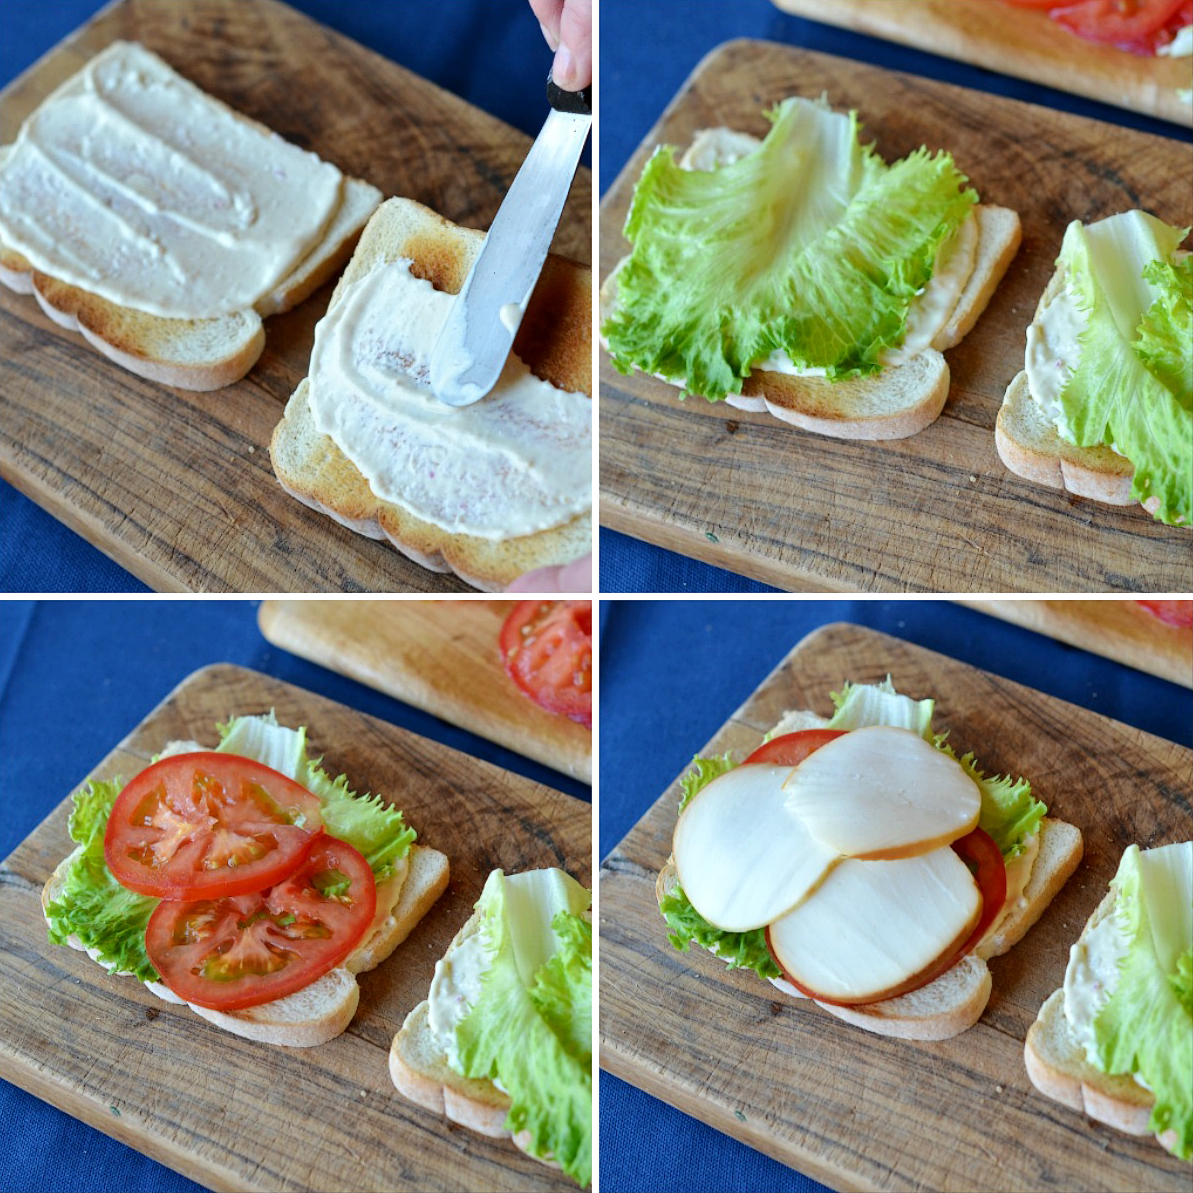 Tasty Kitchen Blog: Meatless BLTs. Guest post by Maggy Keet of Three Many Cooks, recipe by Three Many Cooks.